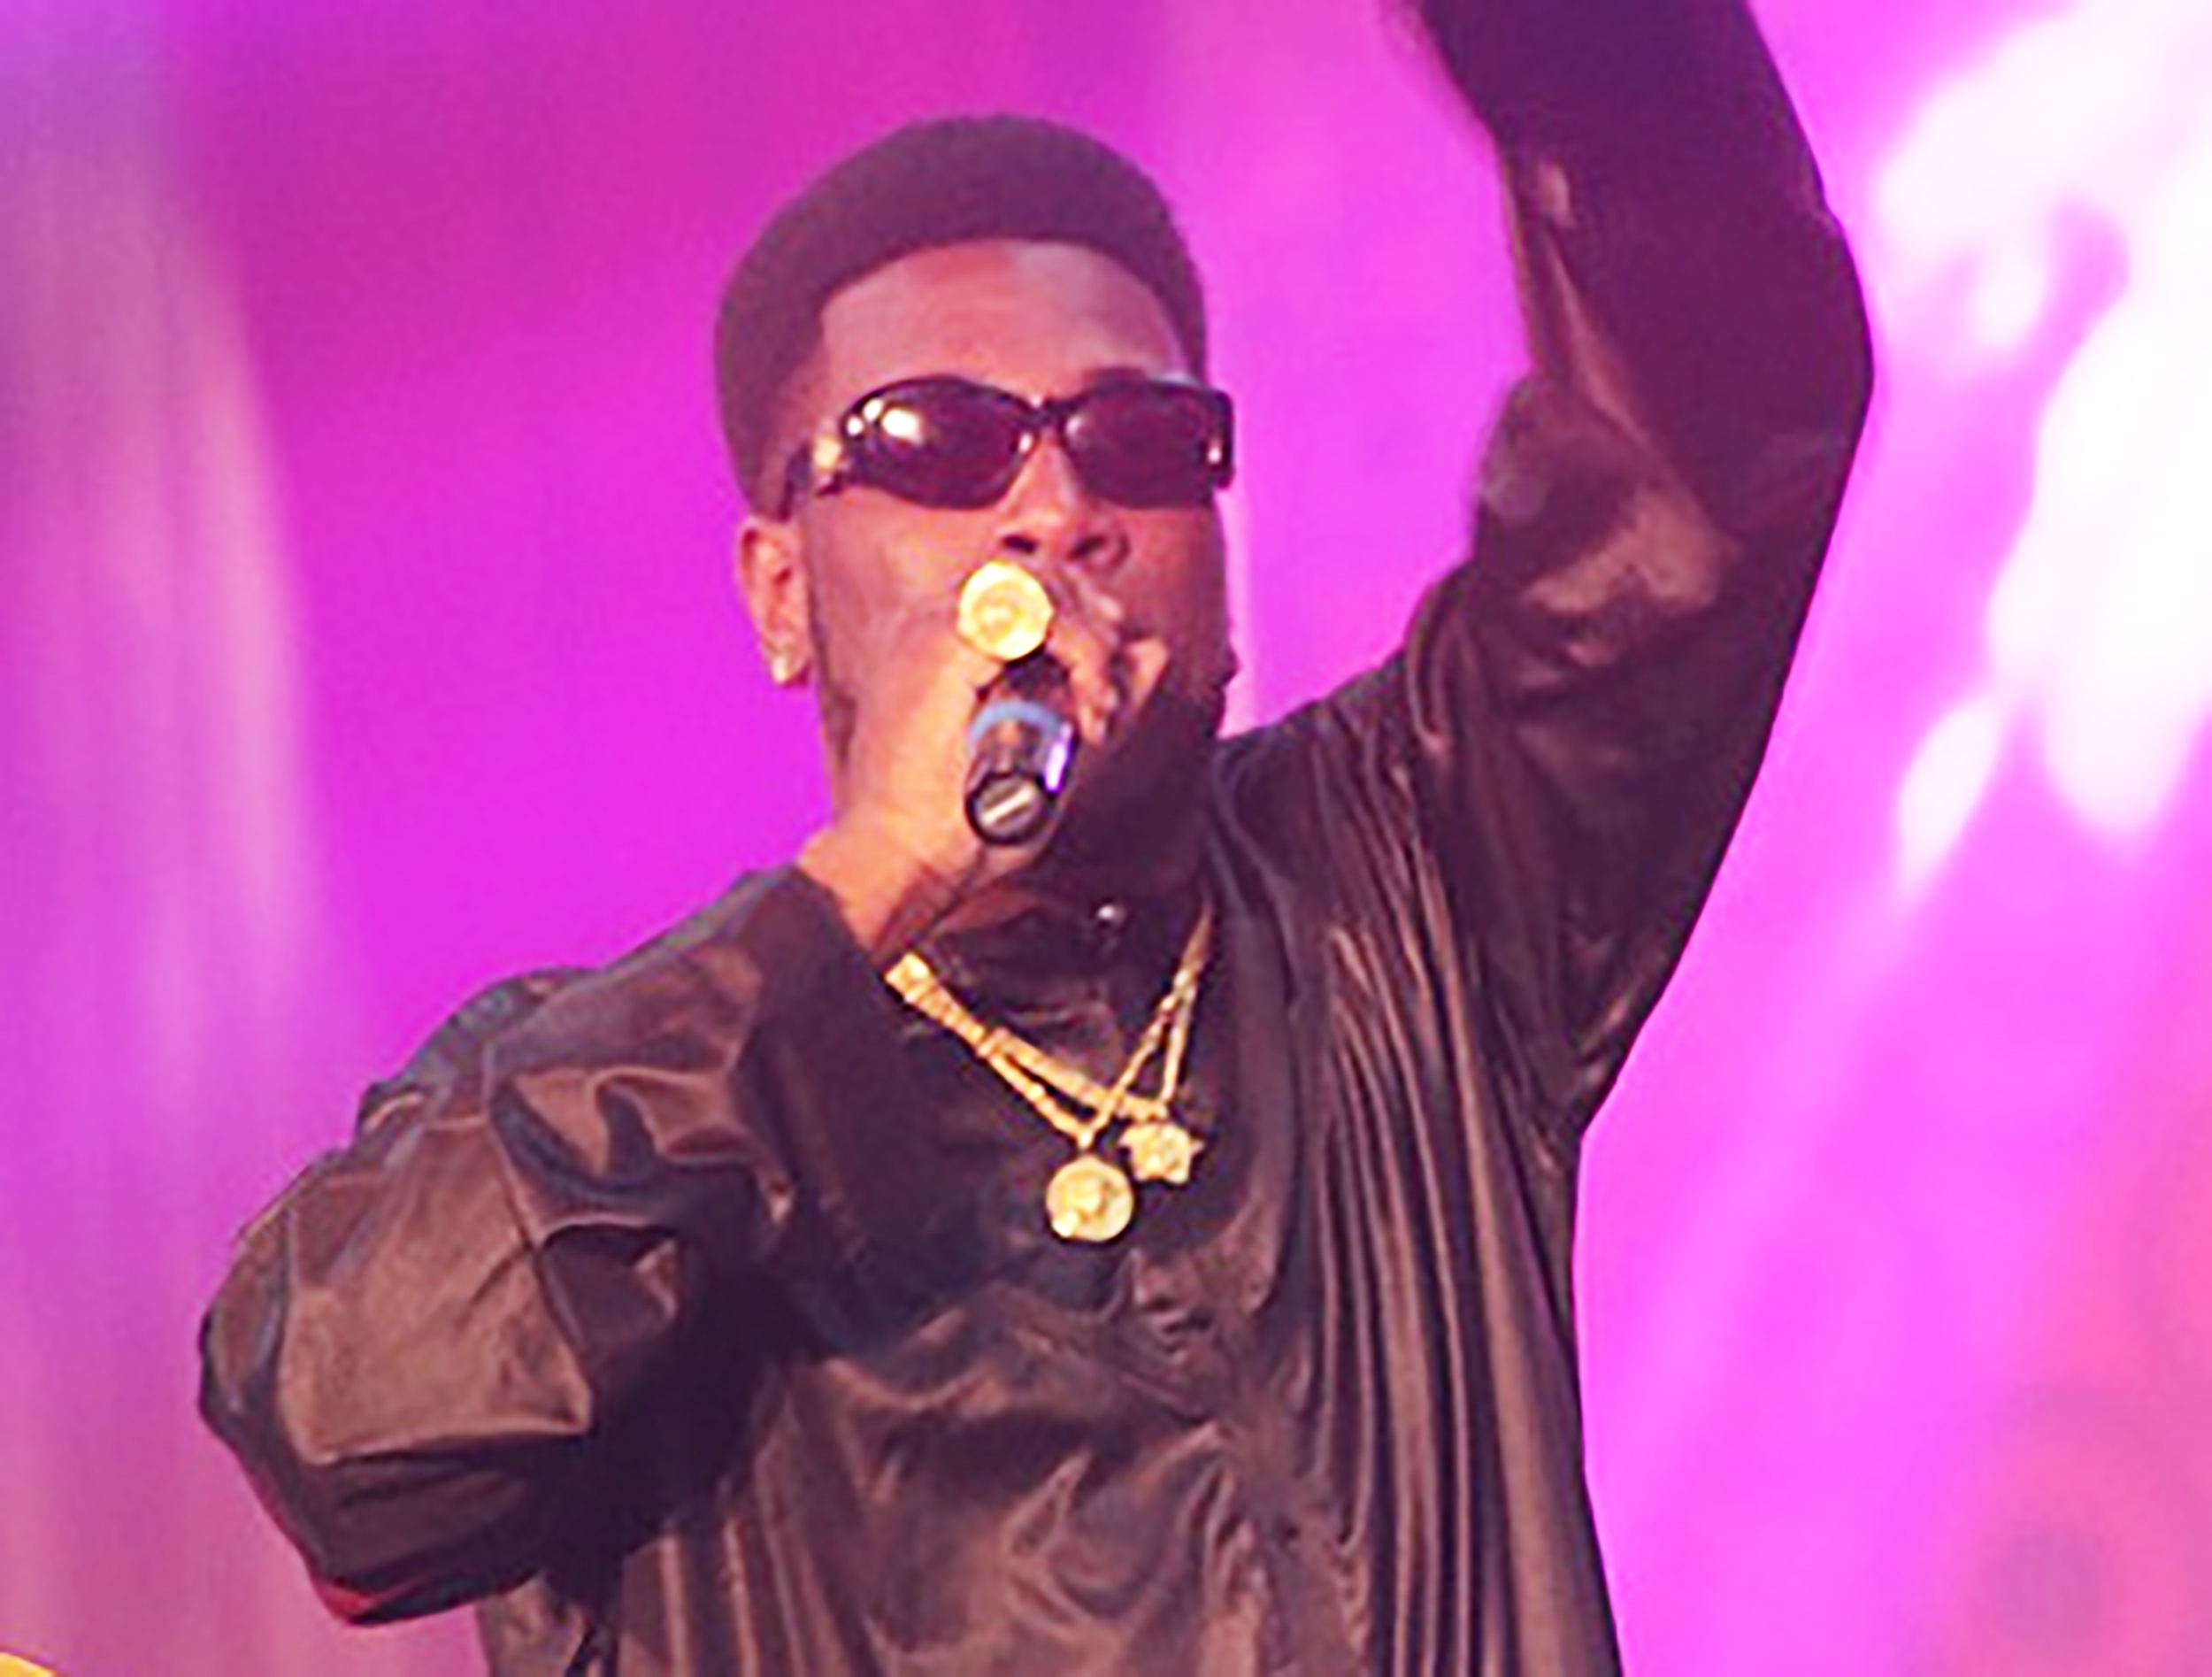 Burna Boy (pictured above) performs at a concert in Ghana. Damini Ebunoluwa Ogulu — known musically as Burna Boy — creates songs in the genre known as Afro-fusion. African Giant focuses on Nigeria but also broadly comments on African culture and life (courtesy of Ameyaw Debrah).